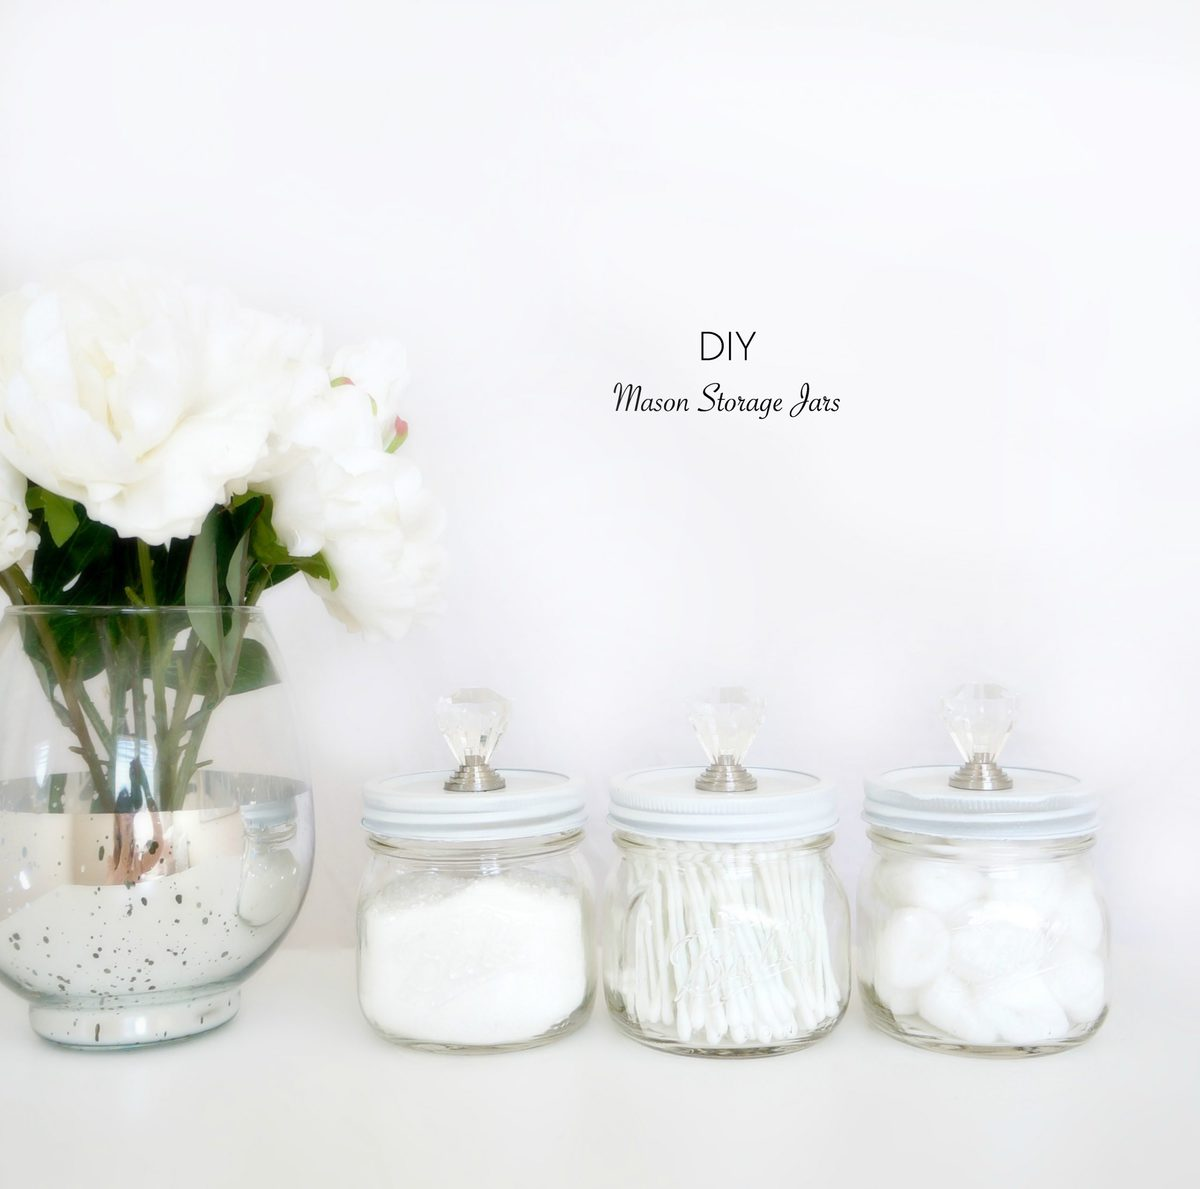 Design Ideas Bathroom Mason Jars ~ Haute healthy living diy mason storage jars